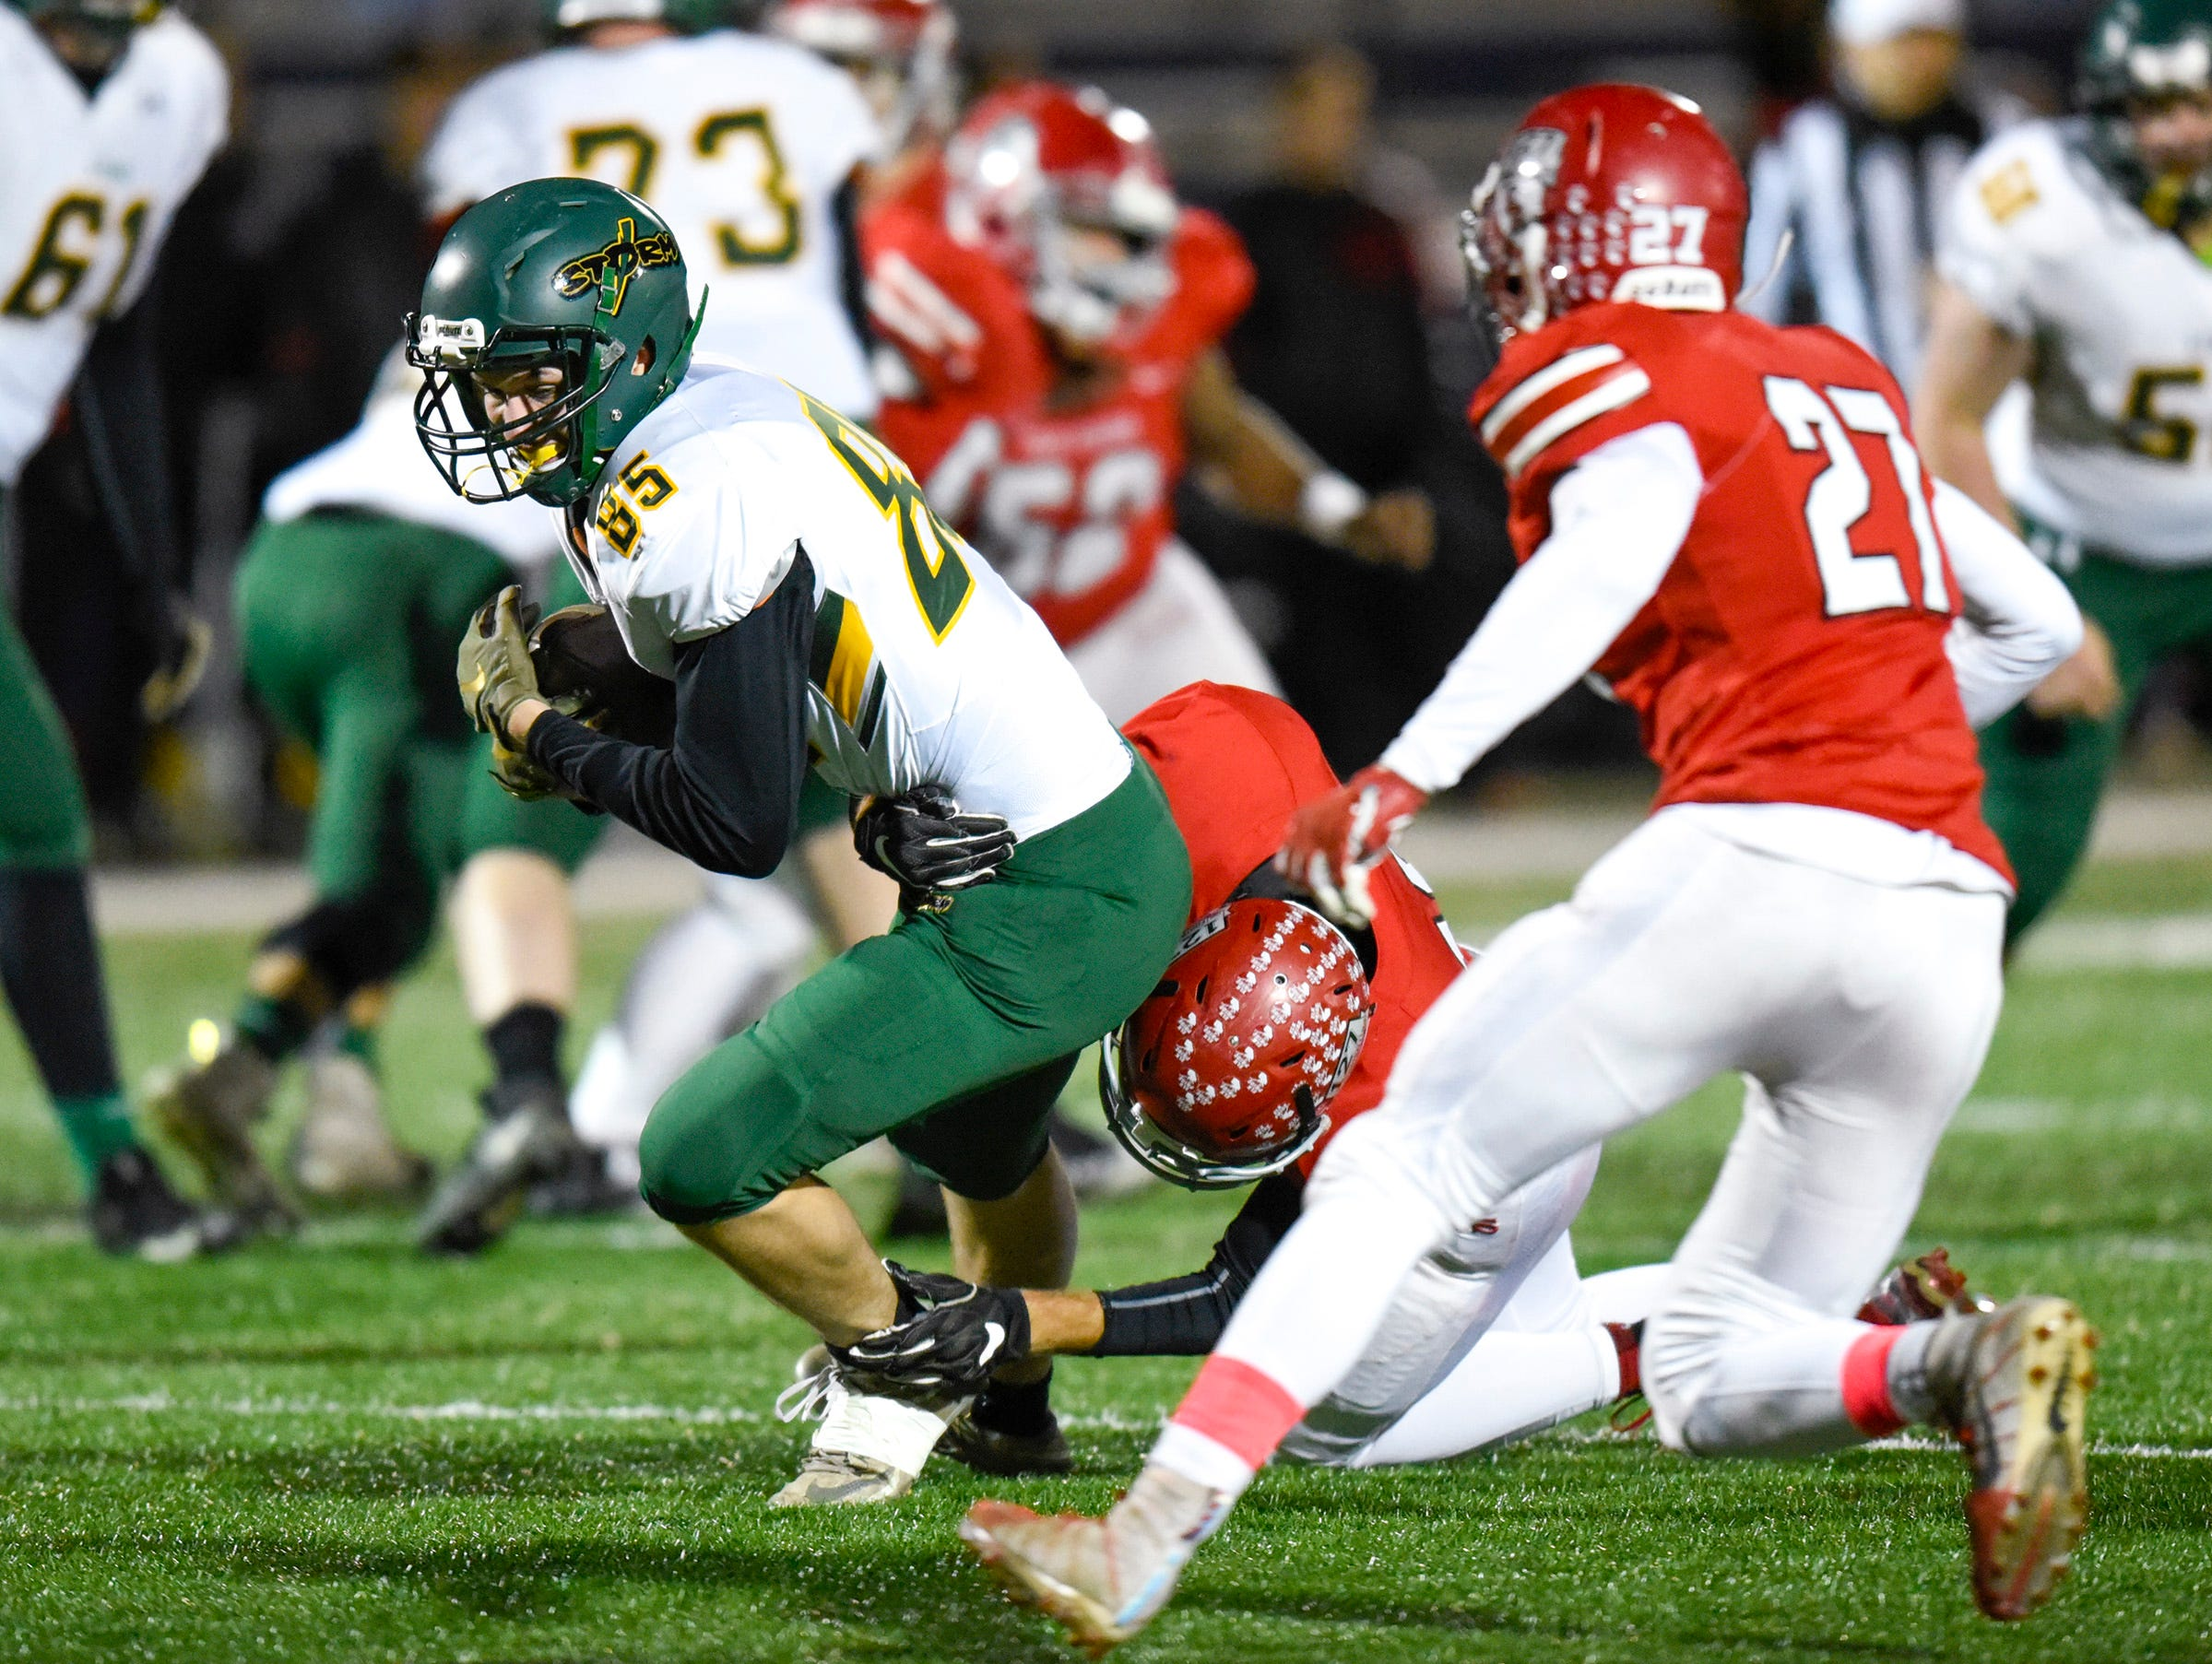 Sauk Rapids tight end Josh Schloe is brought down by the Elk River defense during the first half Friday, Nov. 2, in the Section 6-5A championship at Buffalo High School.